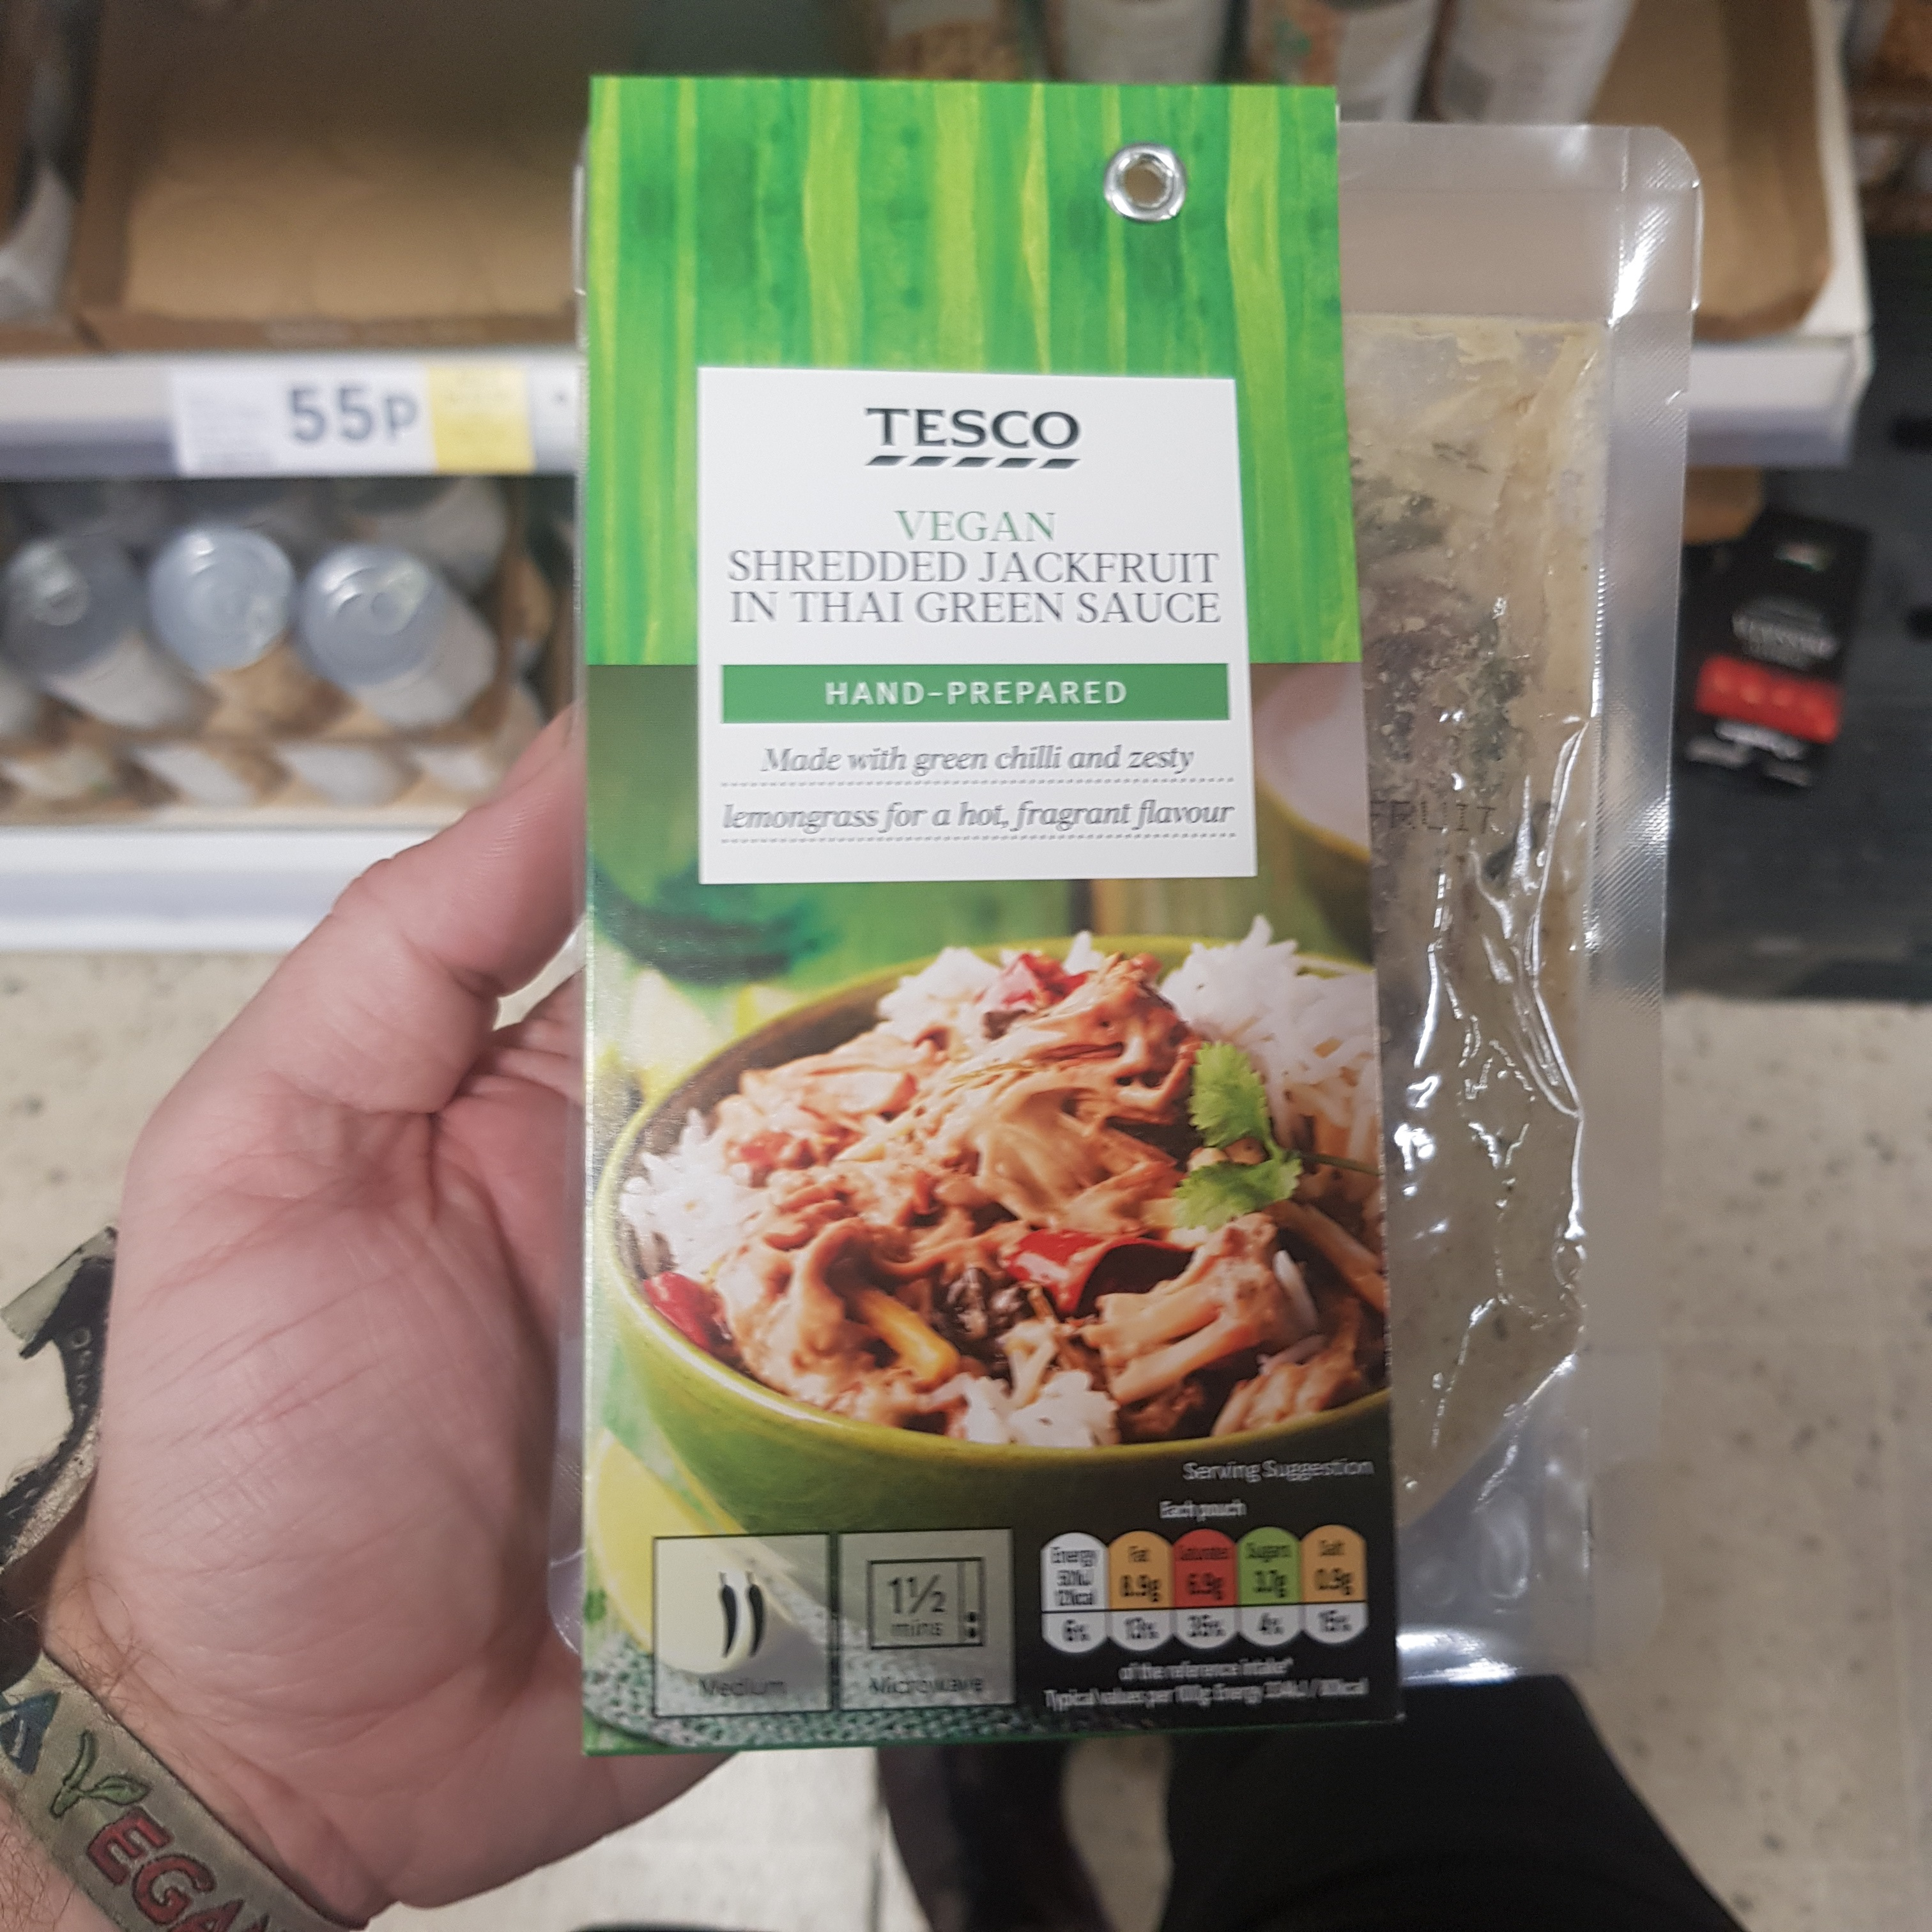 Tesco Shredded Jackfruit In Thai Green Sauce Vegan Food Uk